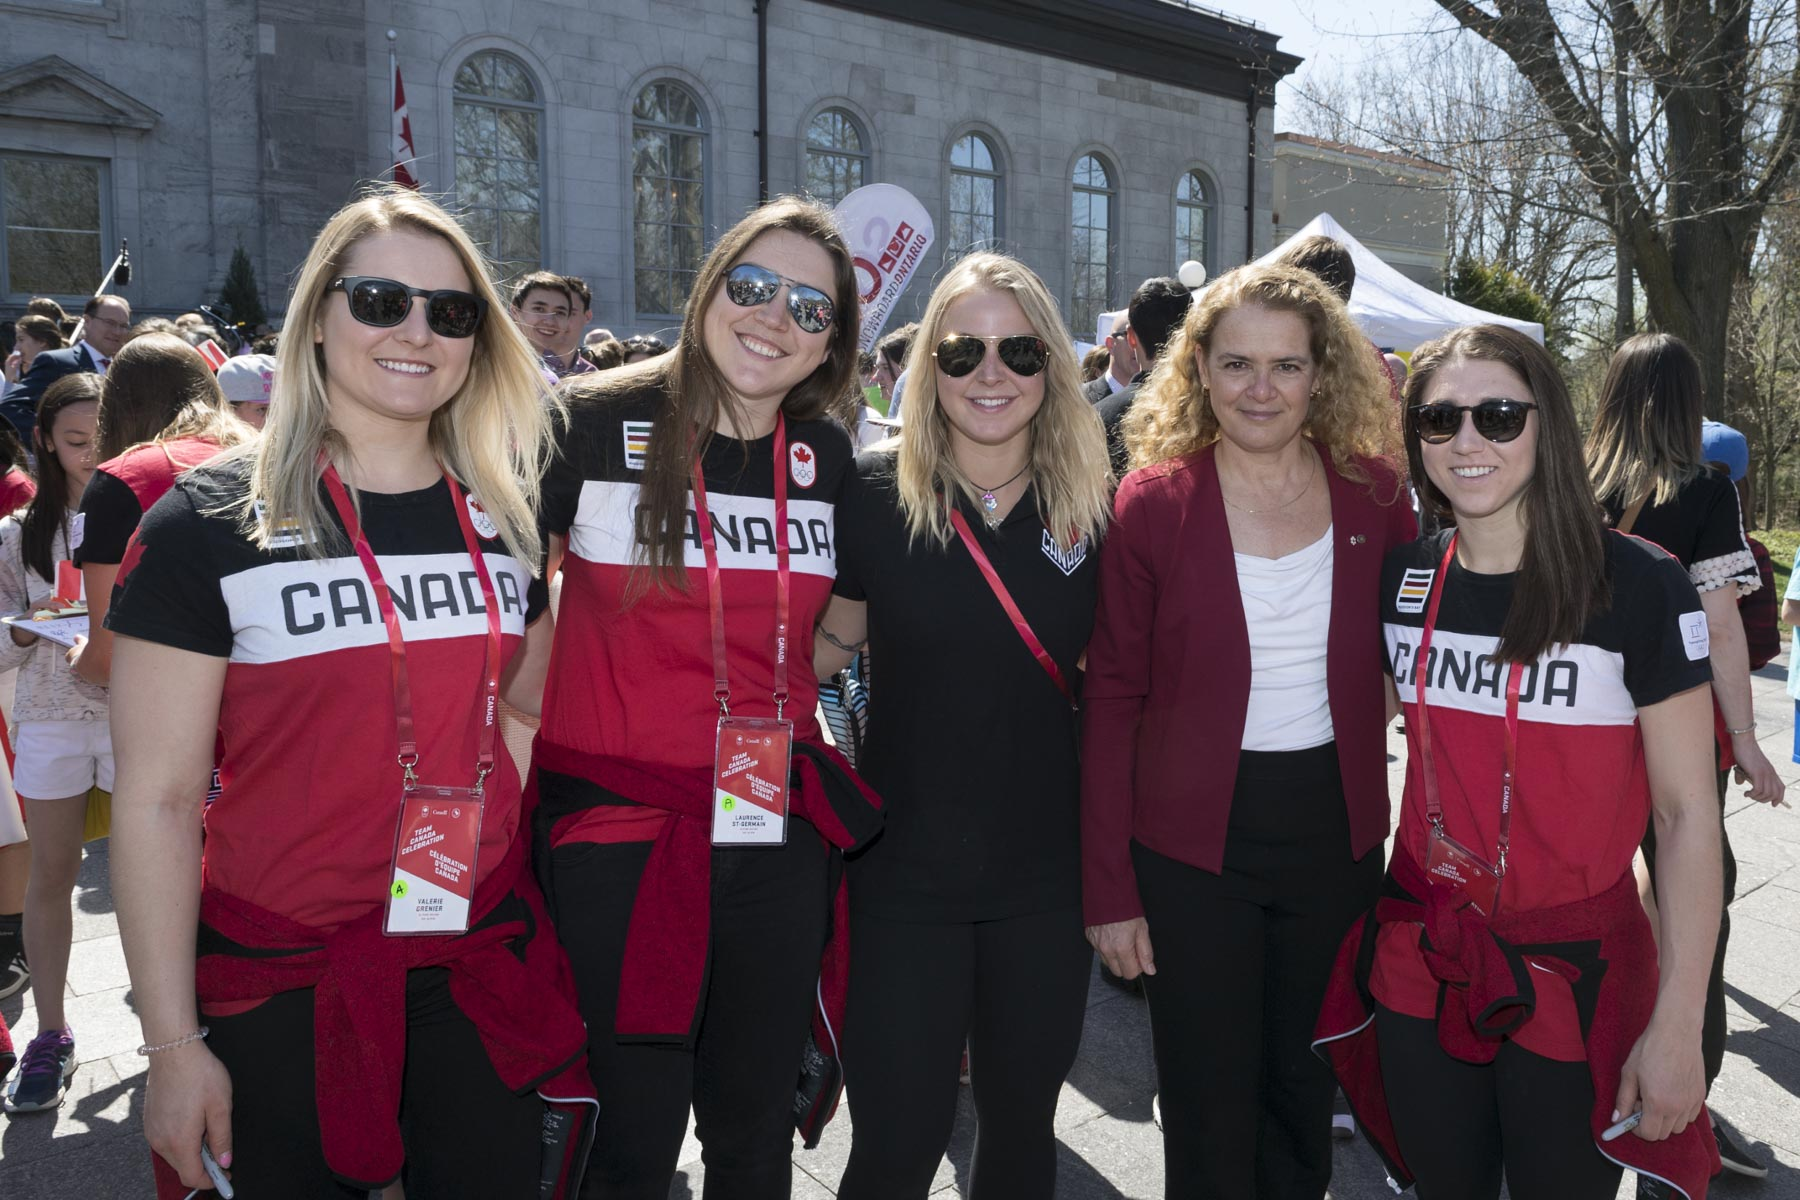 Her Excellency posed for a photo with members of the women's alpine skiing team.